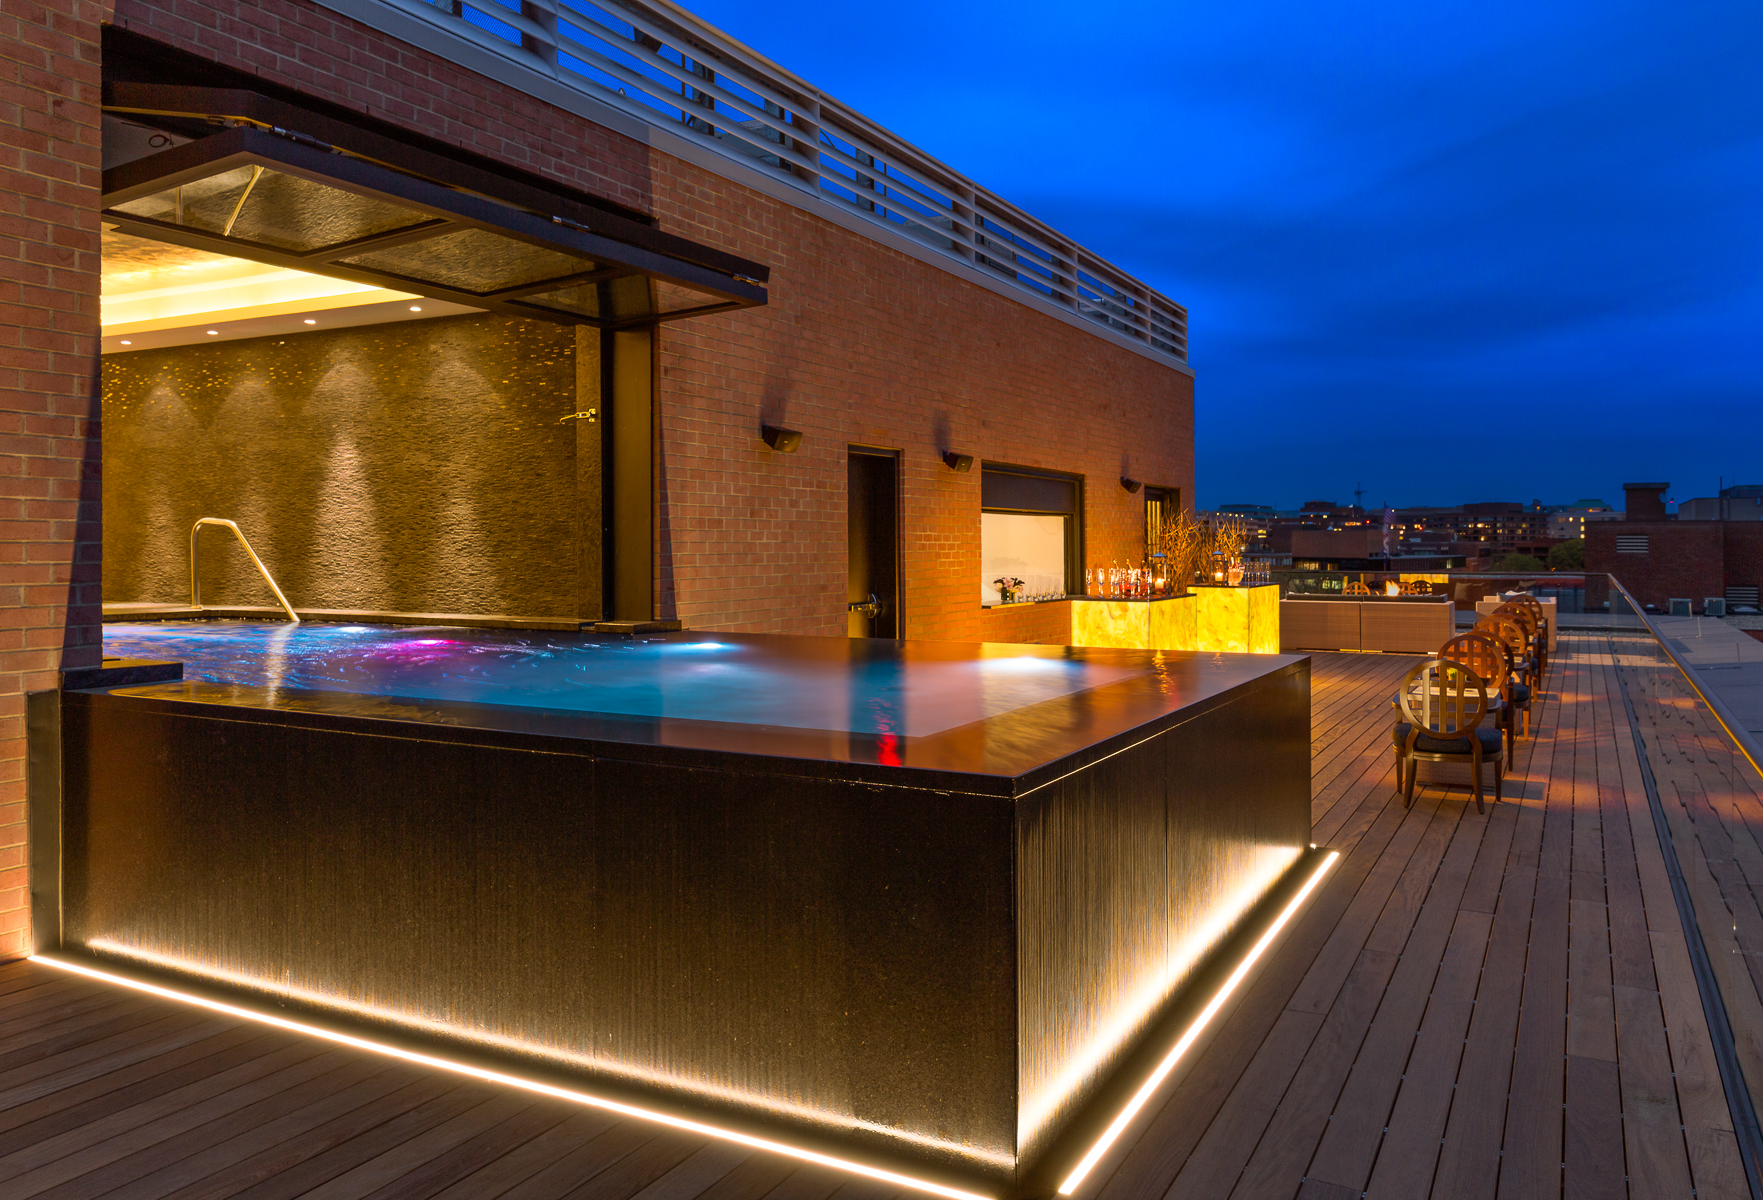 a rooftop pool view at The Capella in Georgeto